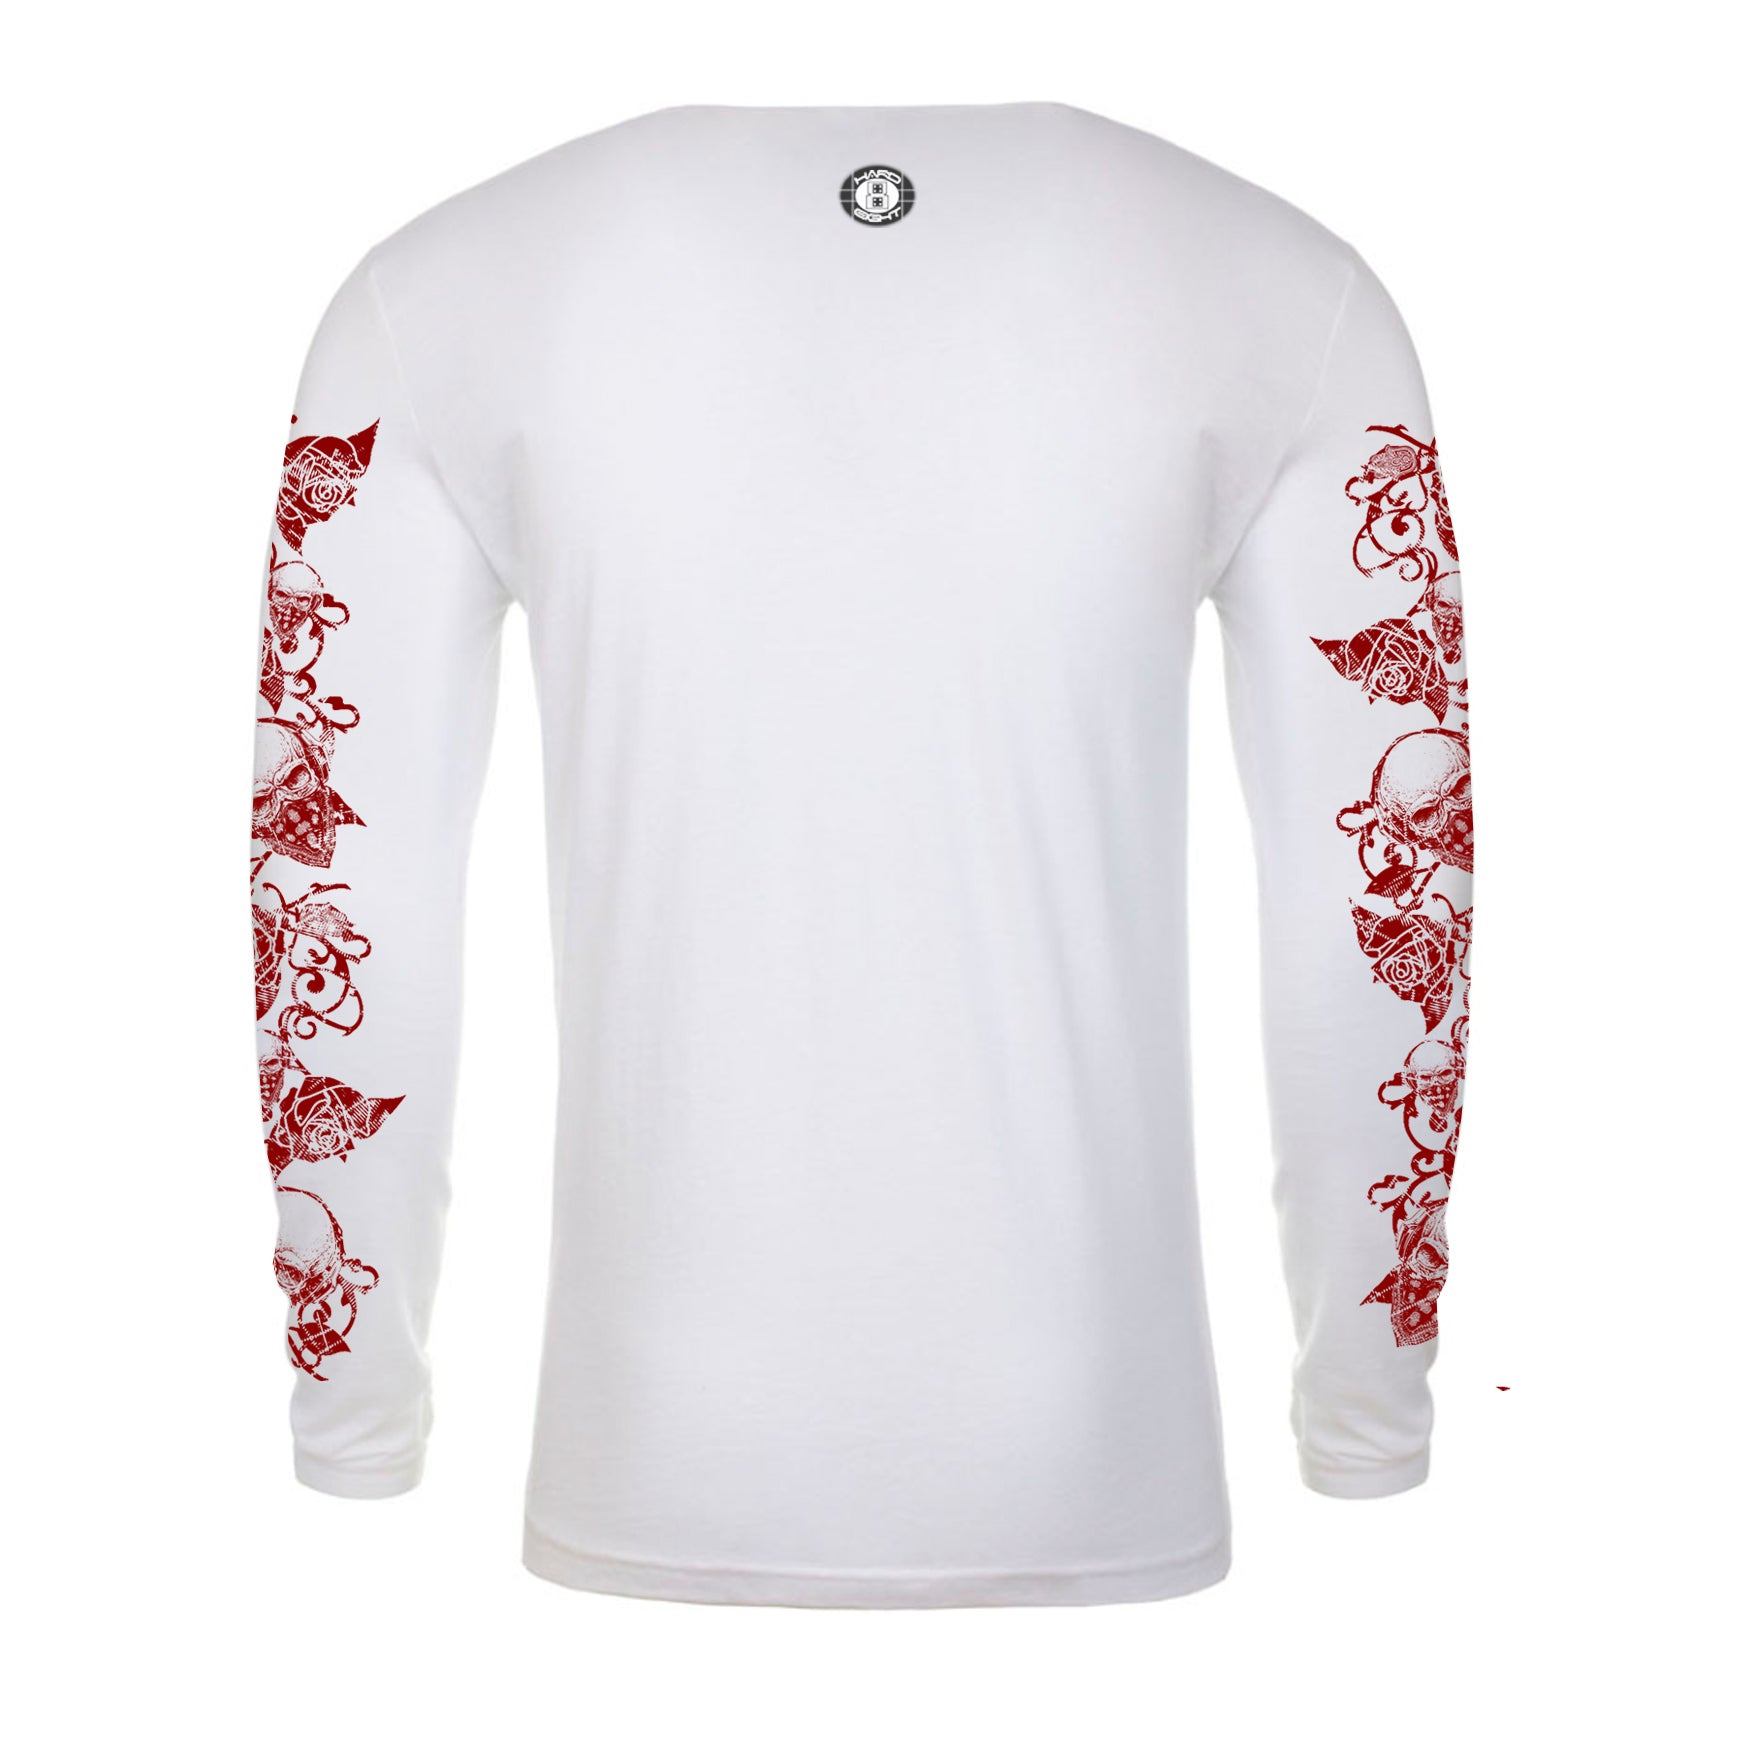 "MEN'S LAUNDERED COTTON LONG SLEEVE CREW  ""ROSE/BANDANA SKULLS"" PRINT White"